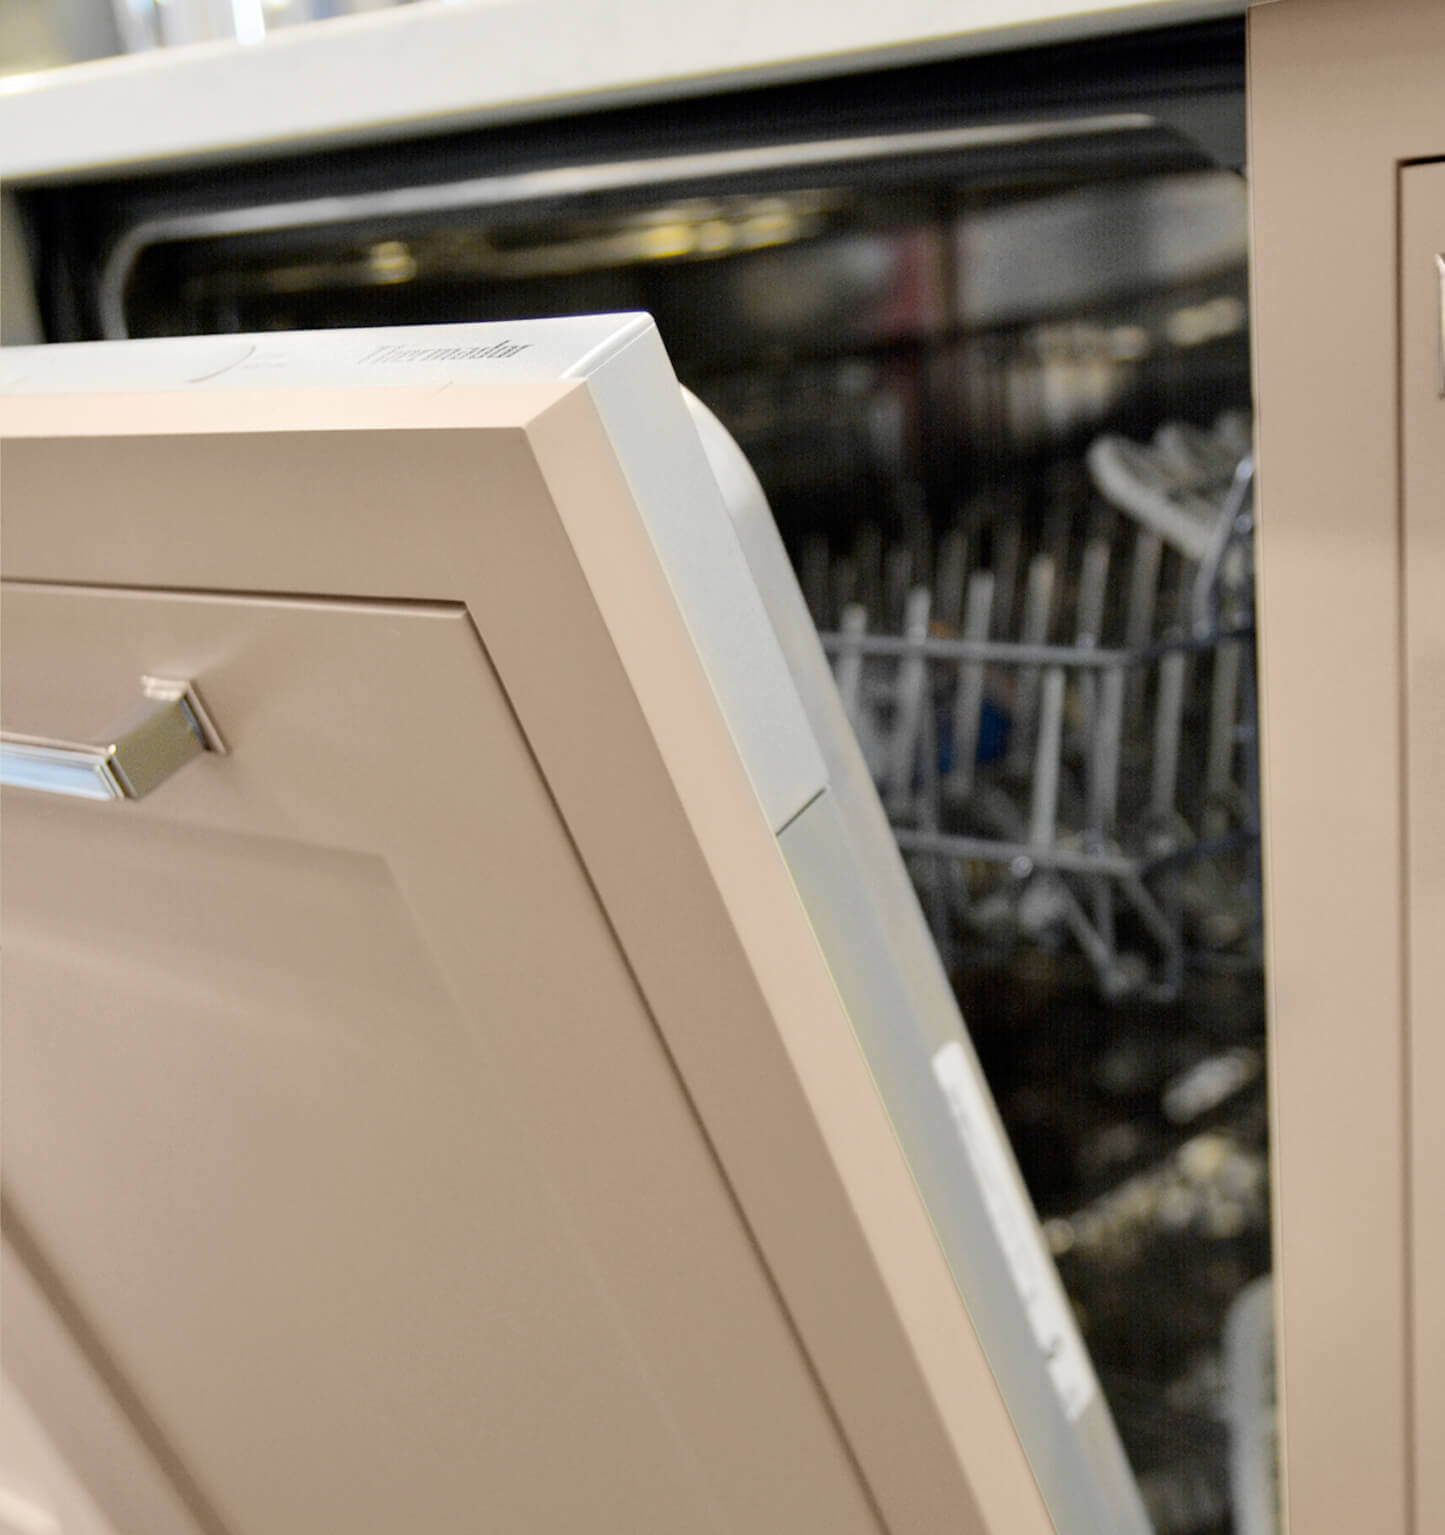 A dishwasher is hidden with a Dura Supreme cabinet appliance panel from Dura Supreme Cabinetry.